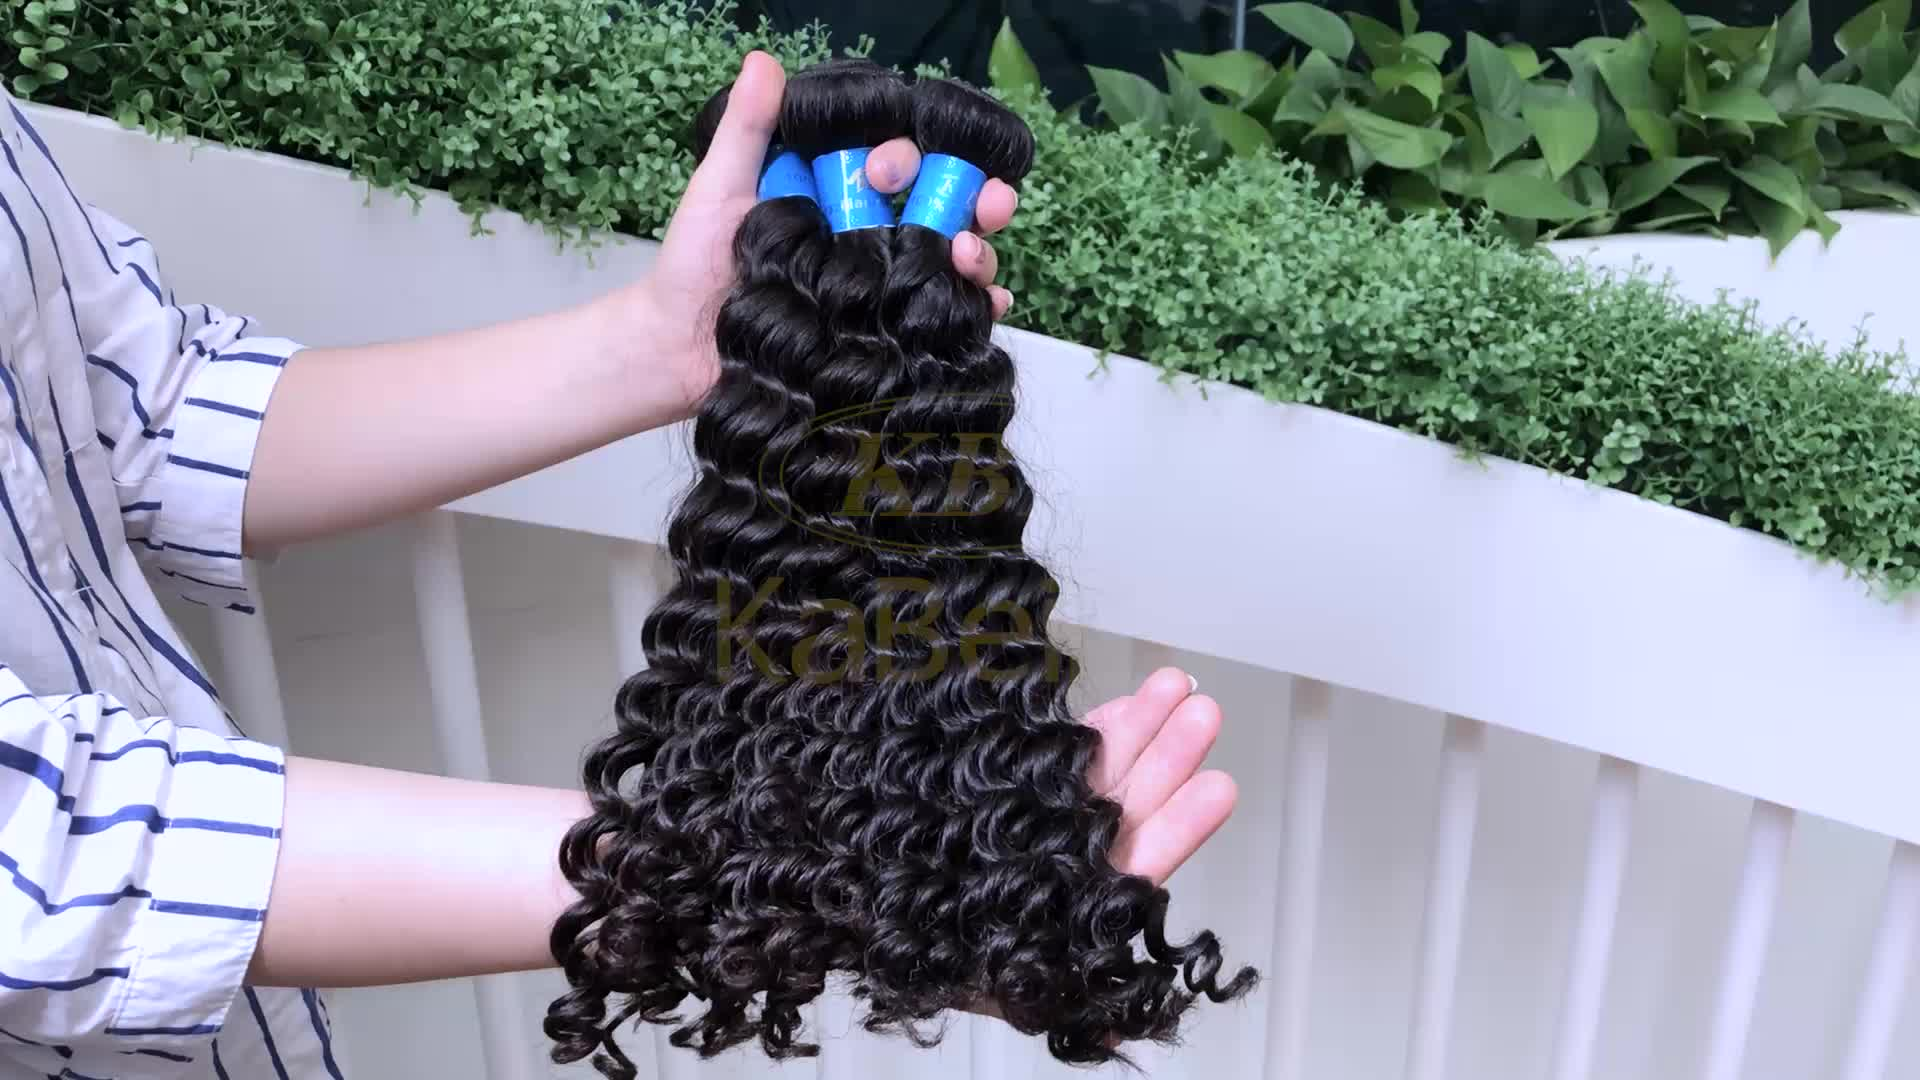 Natural blonde curly human hair extensions,wavy raw 613 curly hair virgin russian kinky curly hair,remy hair weave color 144